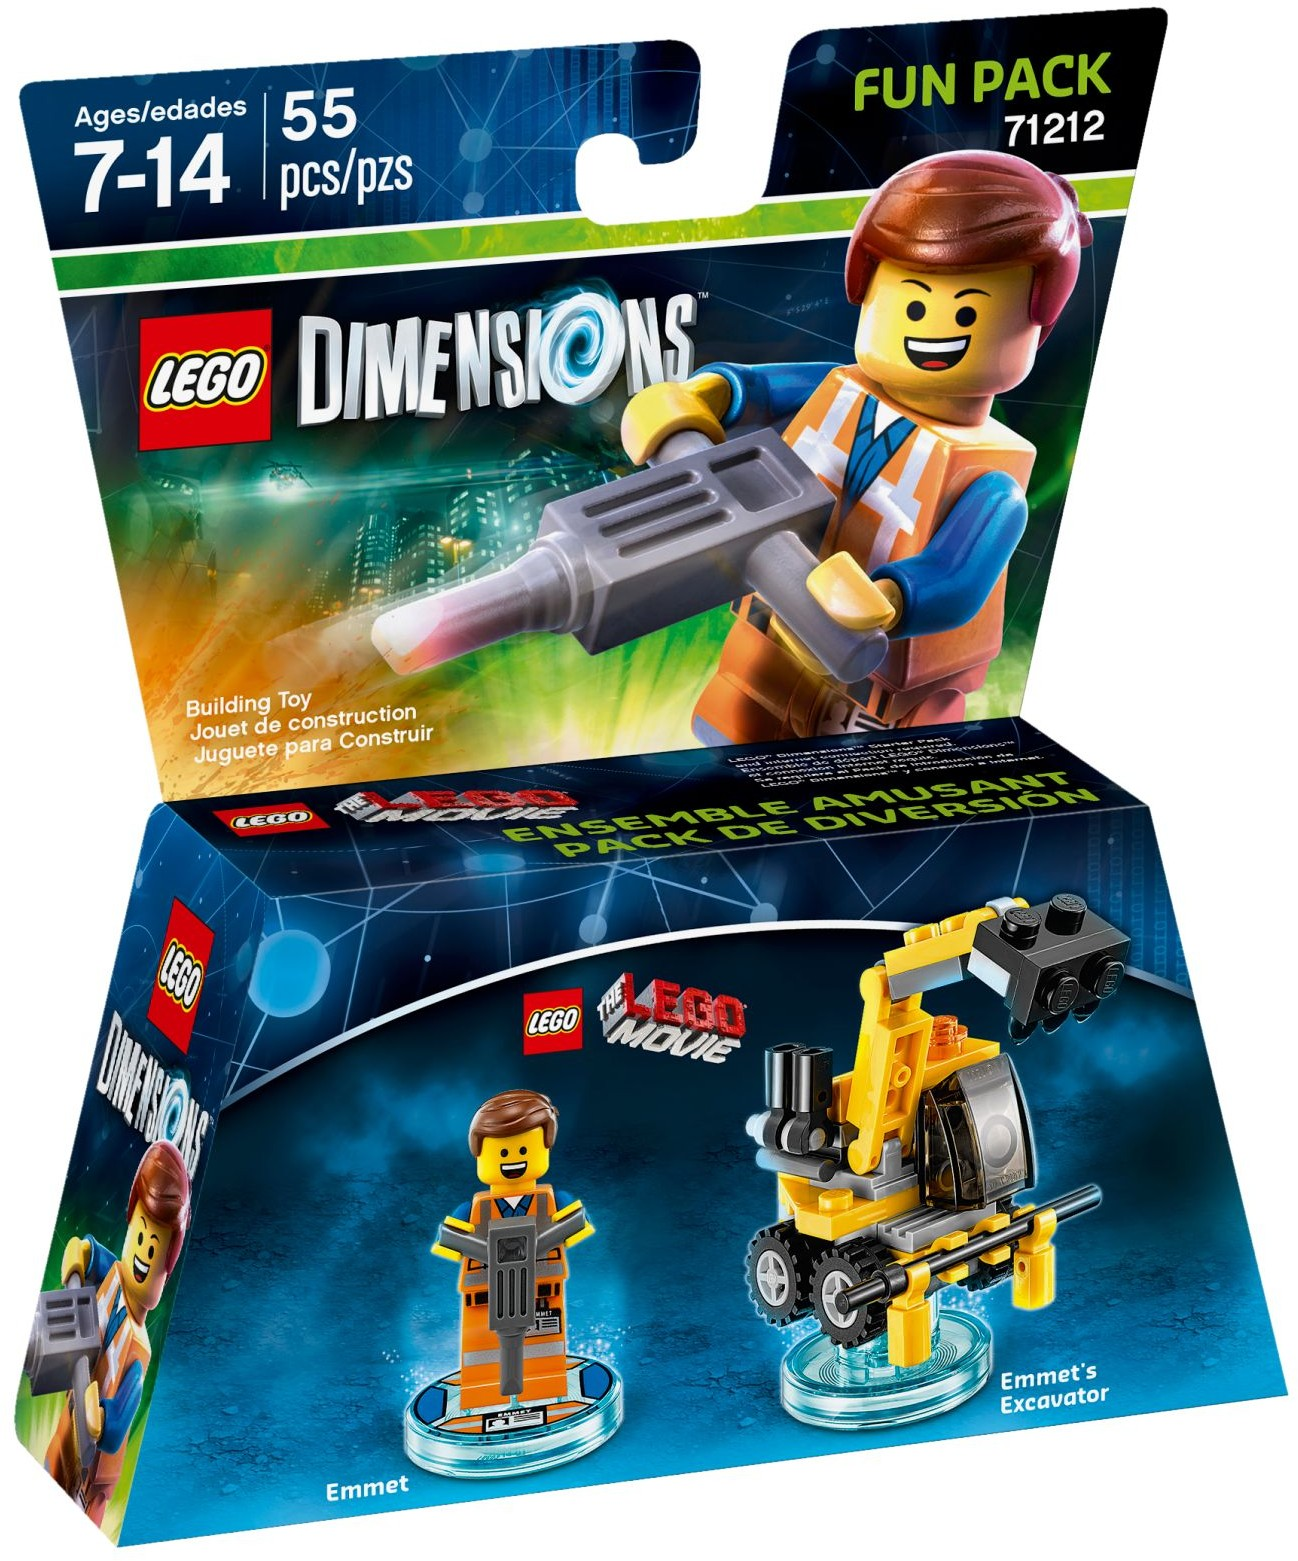 LEGO 71212 - Dimensions - Fun Pack: Emmet